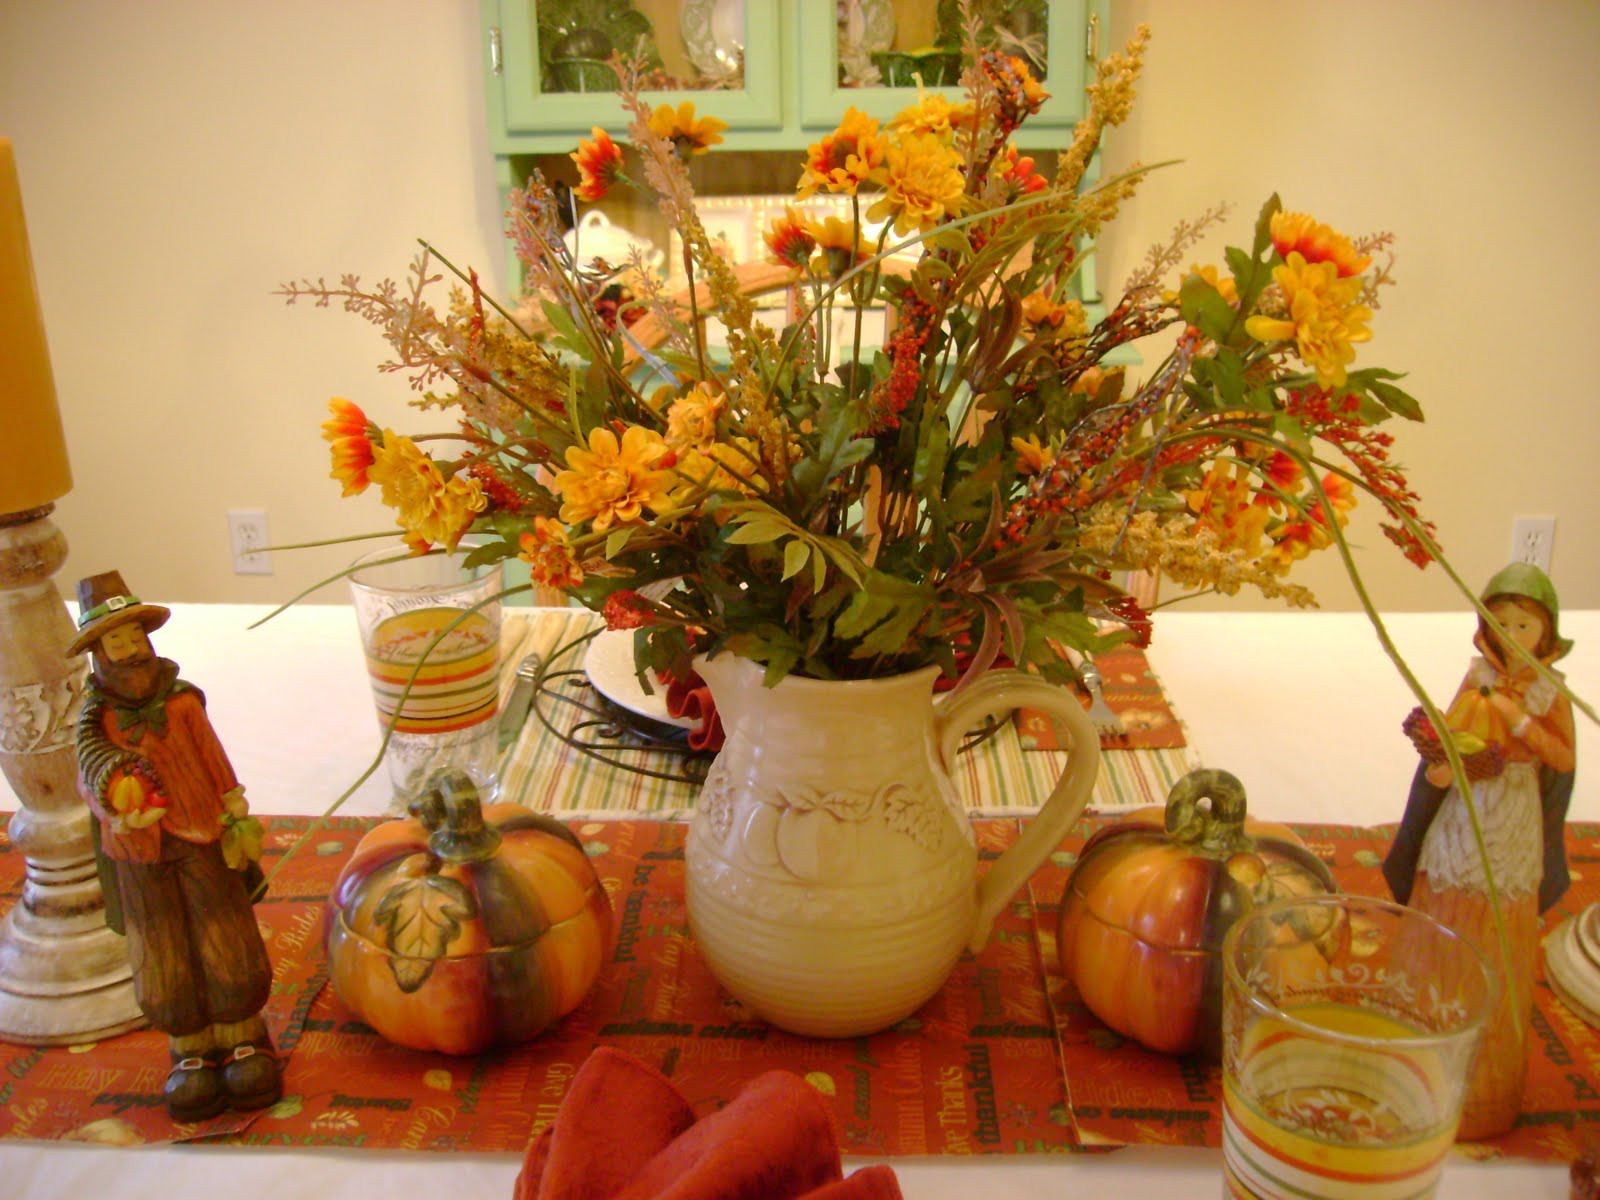 Table Decorations For Thanksgiving  The Sunny Side of the Sun Porch My Thanksgiving Table